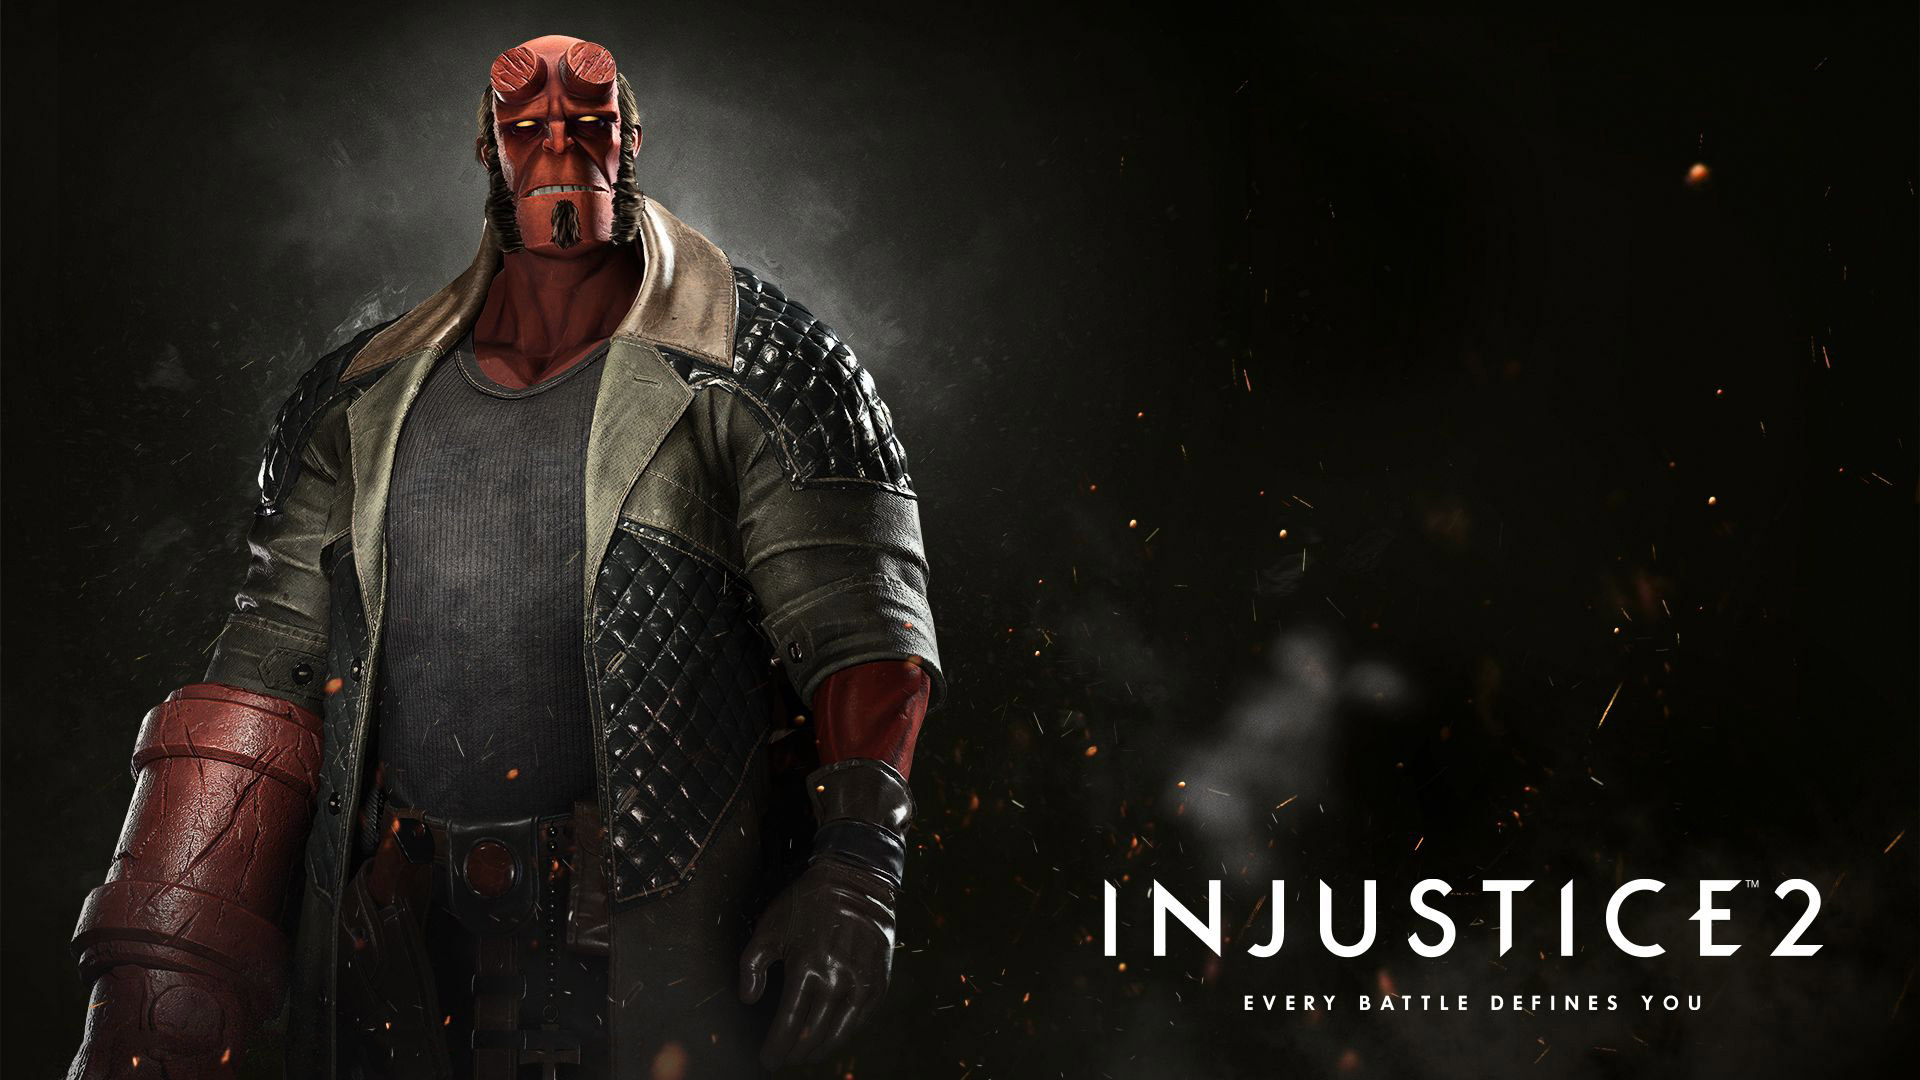 Free Injustice 2 Wallpaper in 1920x1080